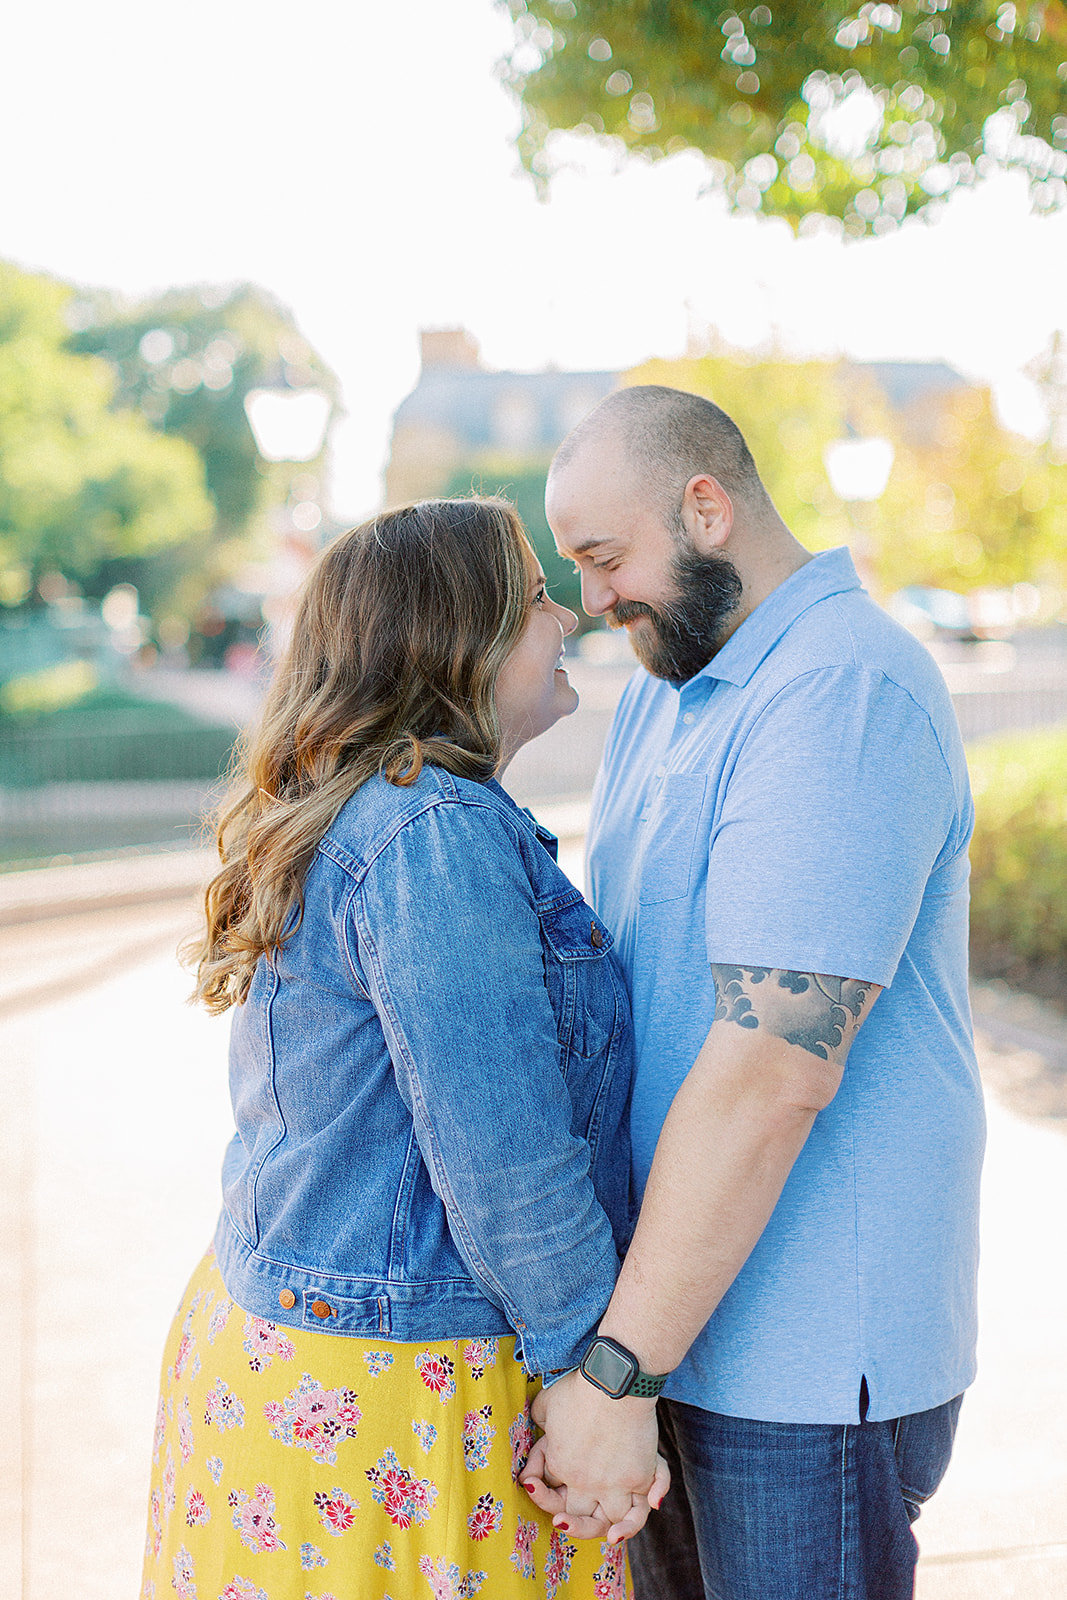 Larisa_+_Craig_Disney_Epcot_Boardwalk_Resort_Engagement_Session_Photographer_Casie_Marie_Photography-5